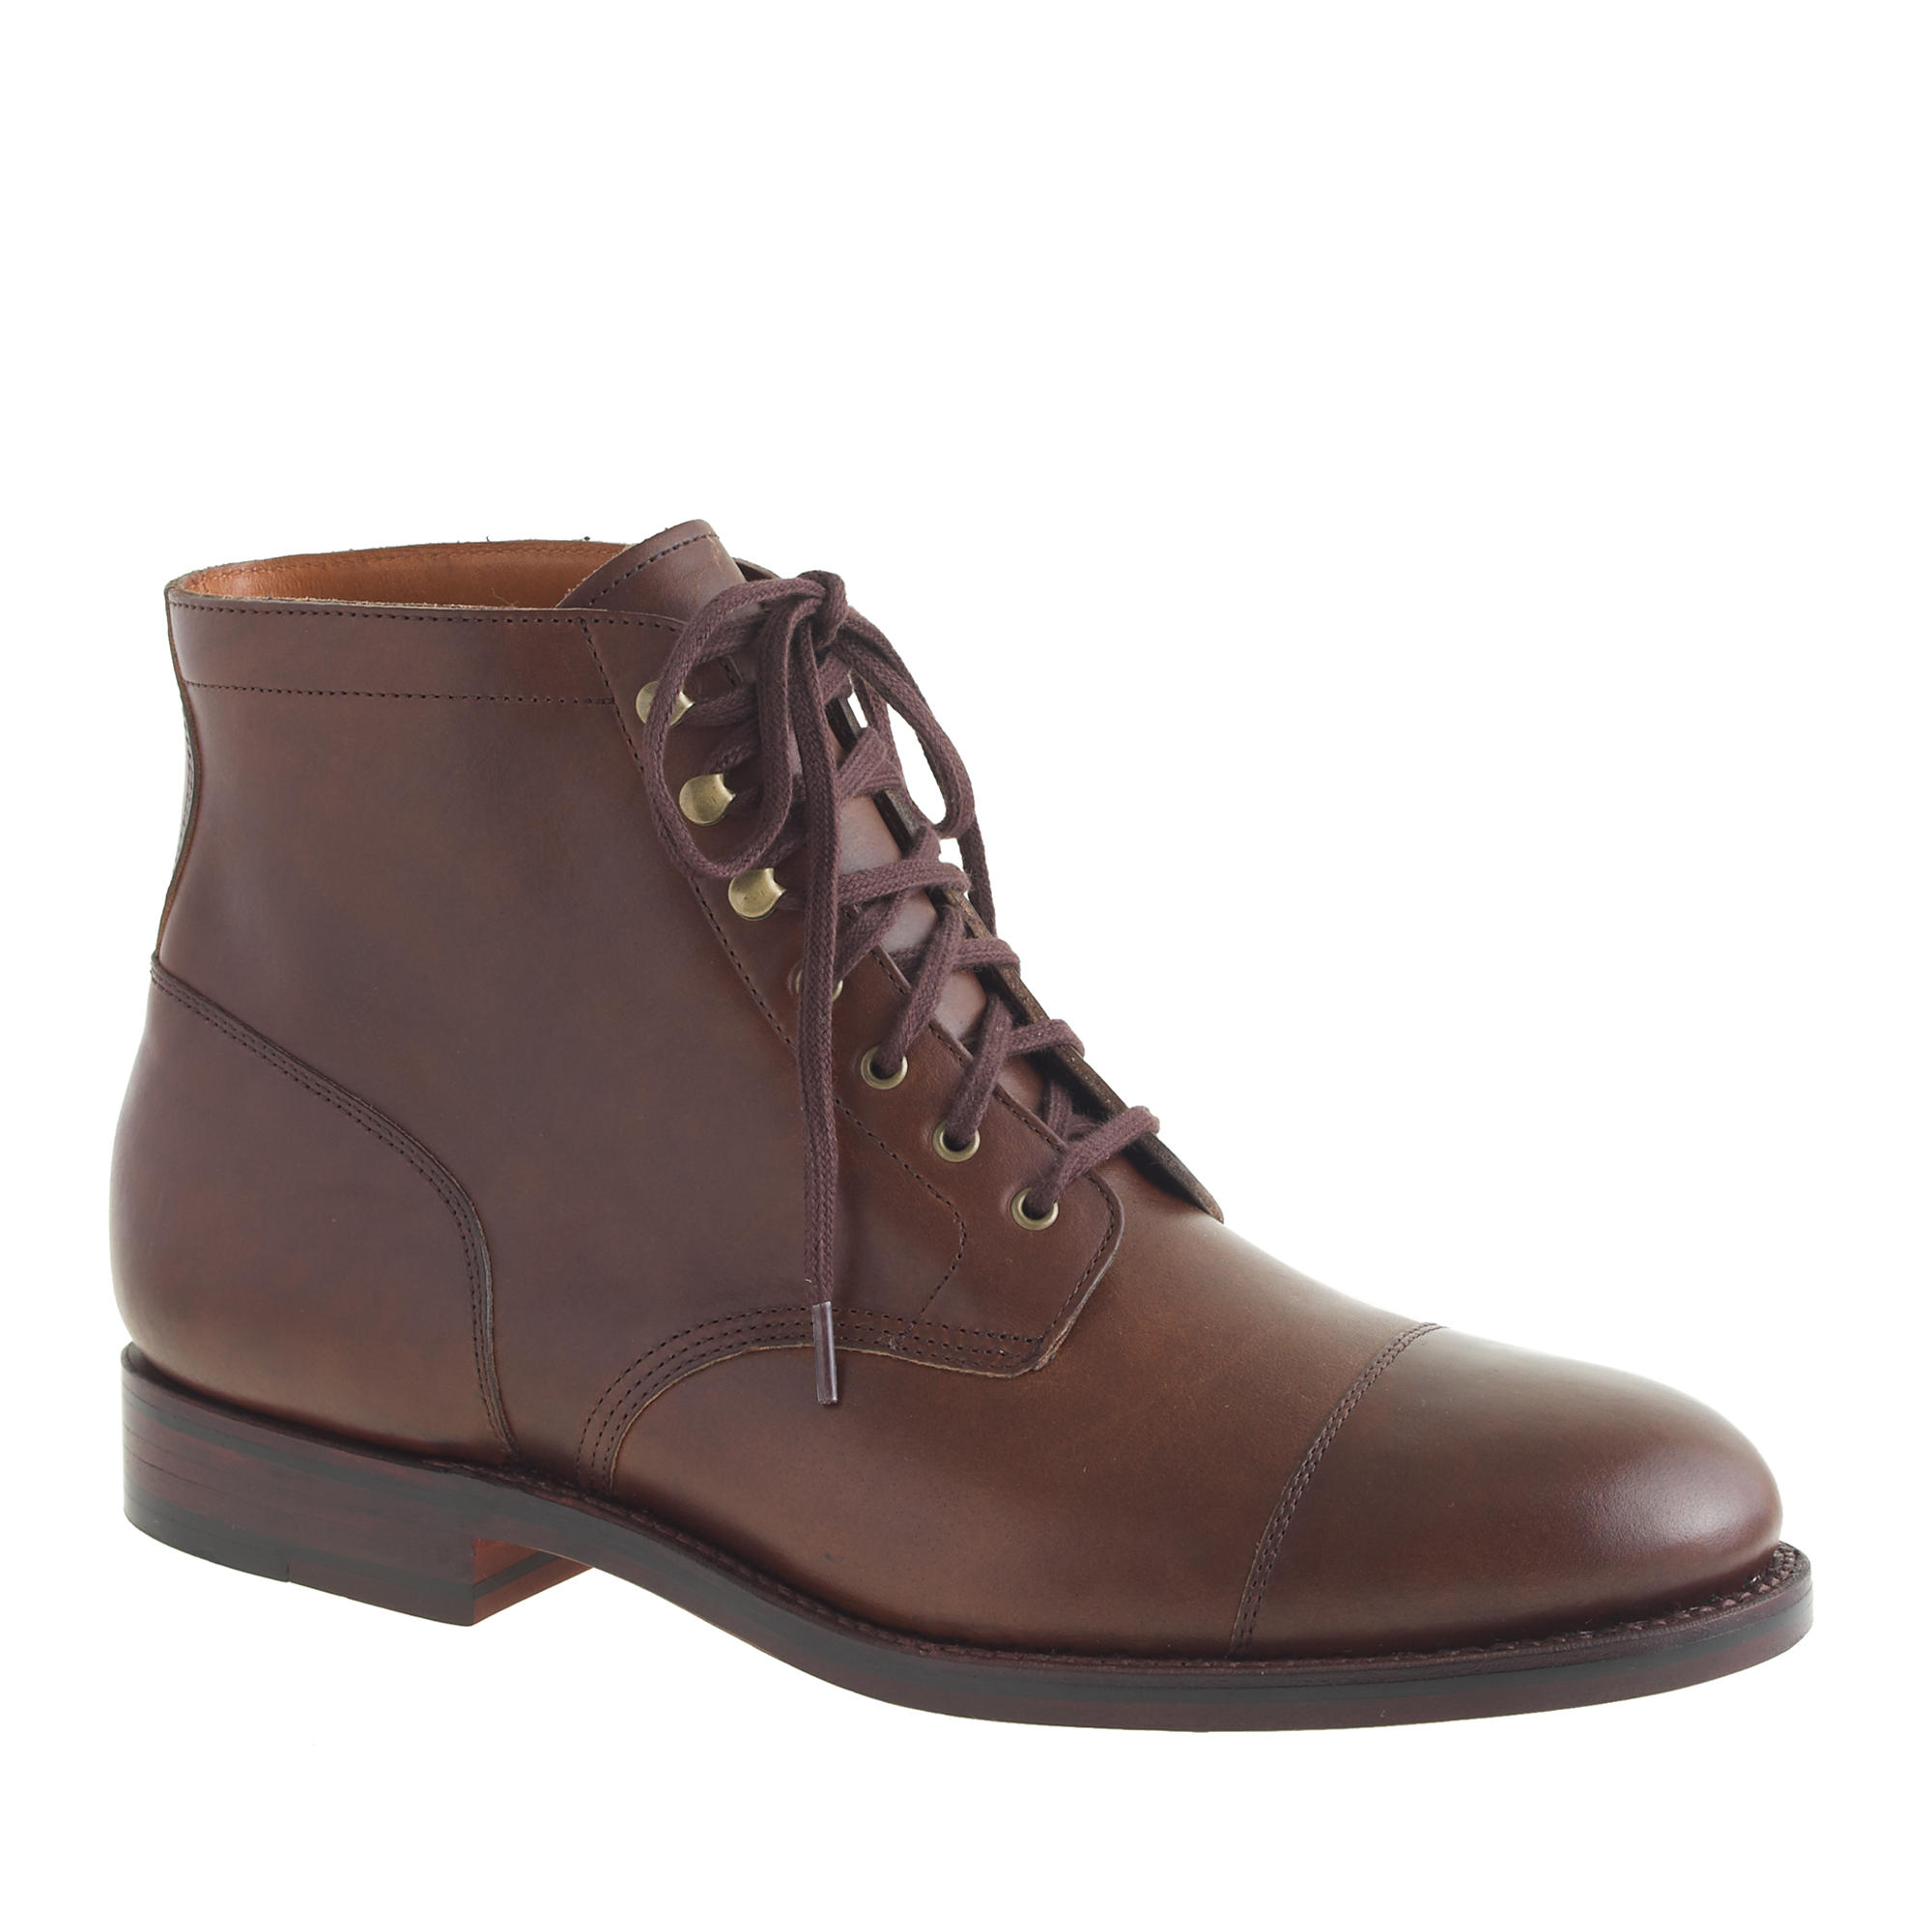 j crew ludlow cap toe boots in brown for lyst